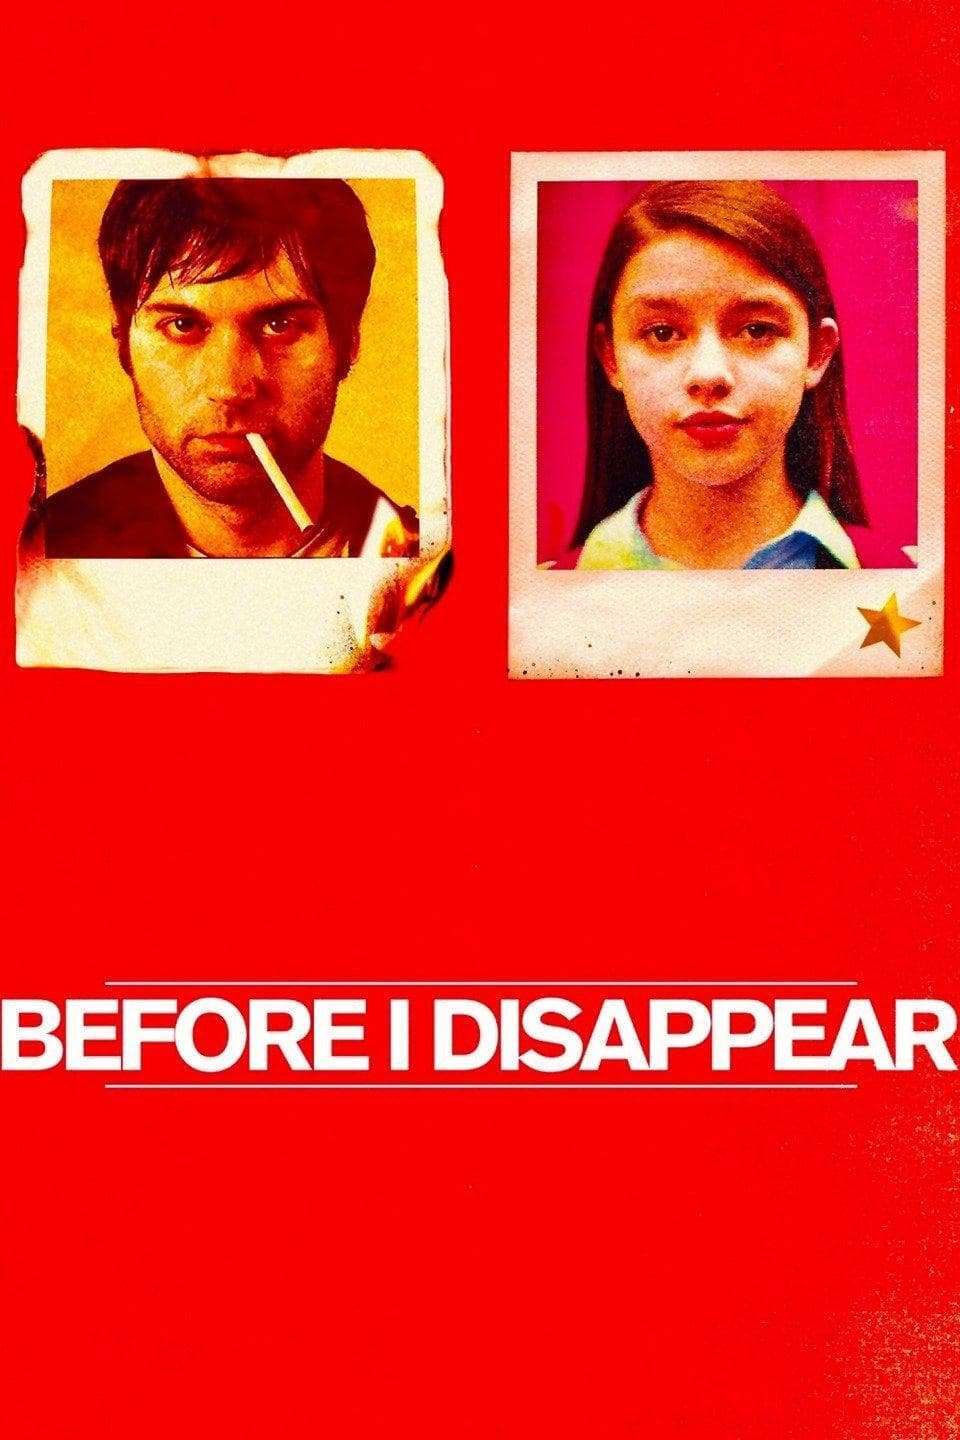 Caratula de Before I Disappear (Before I Disappear)